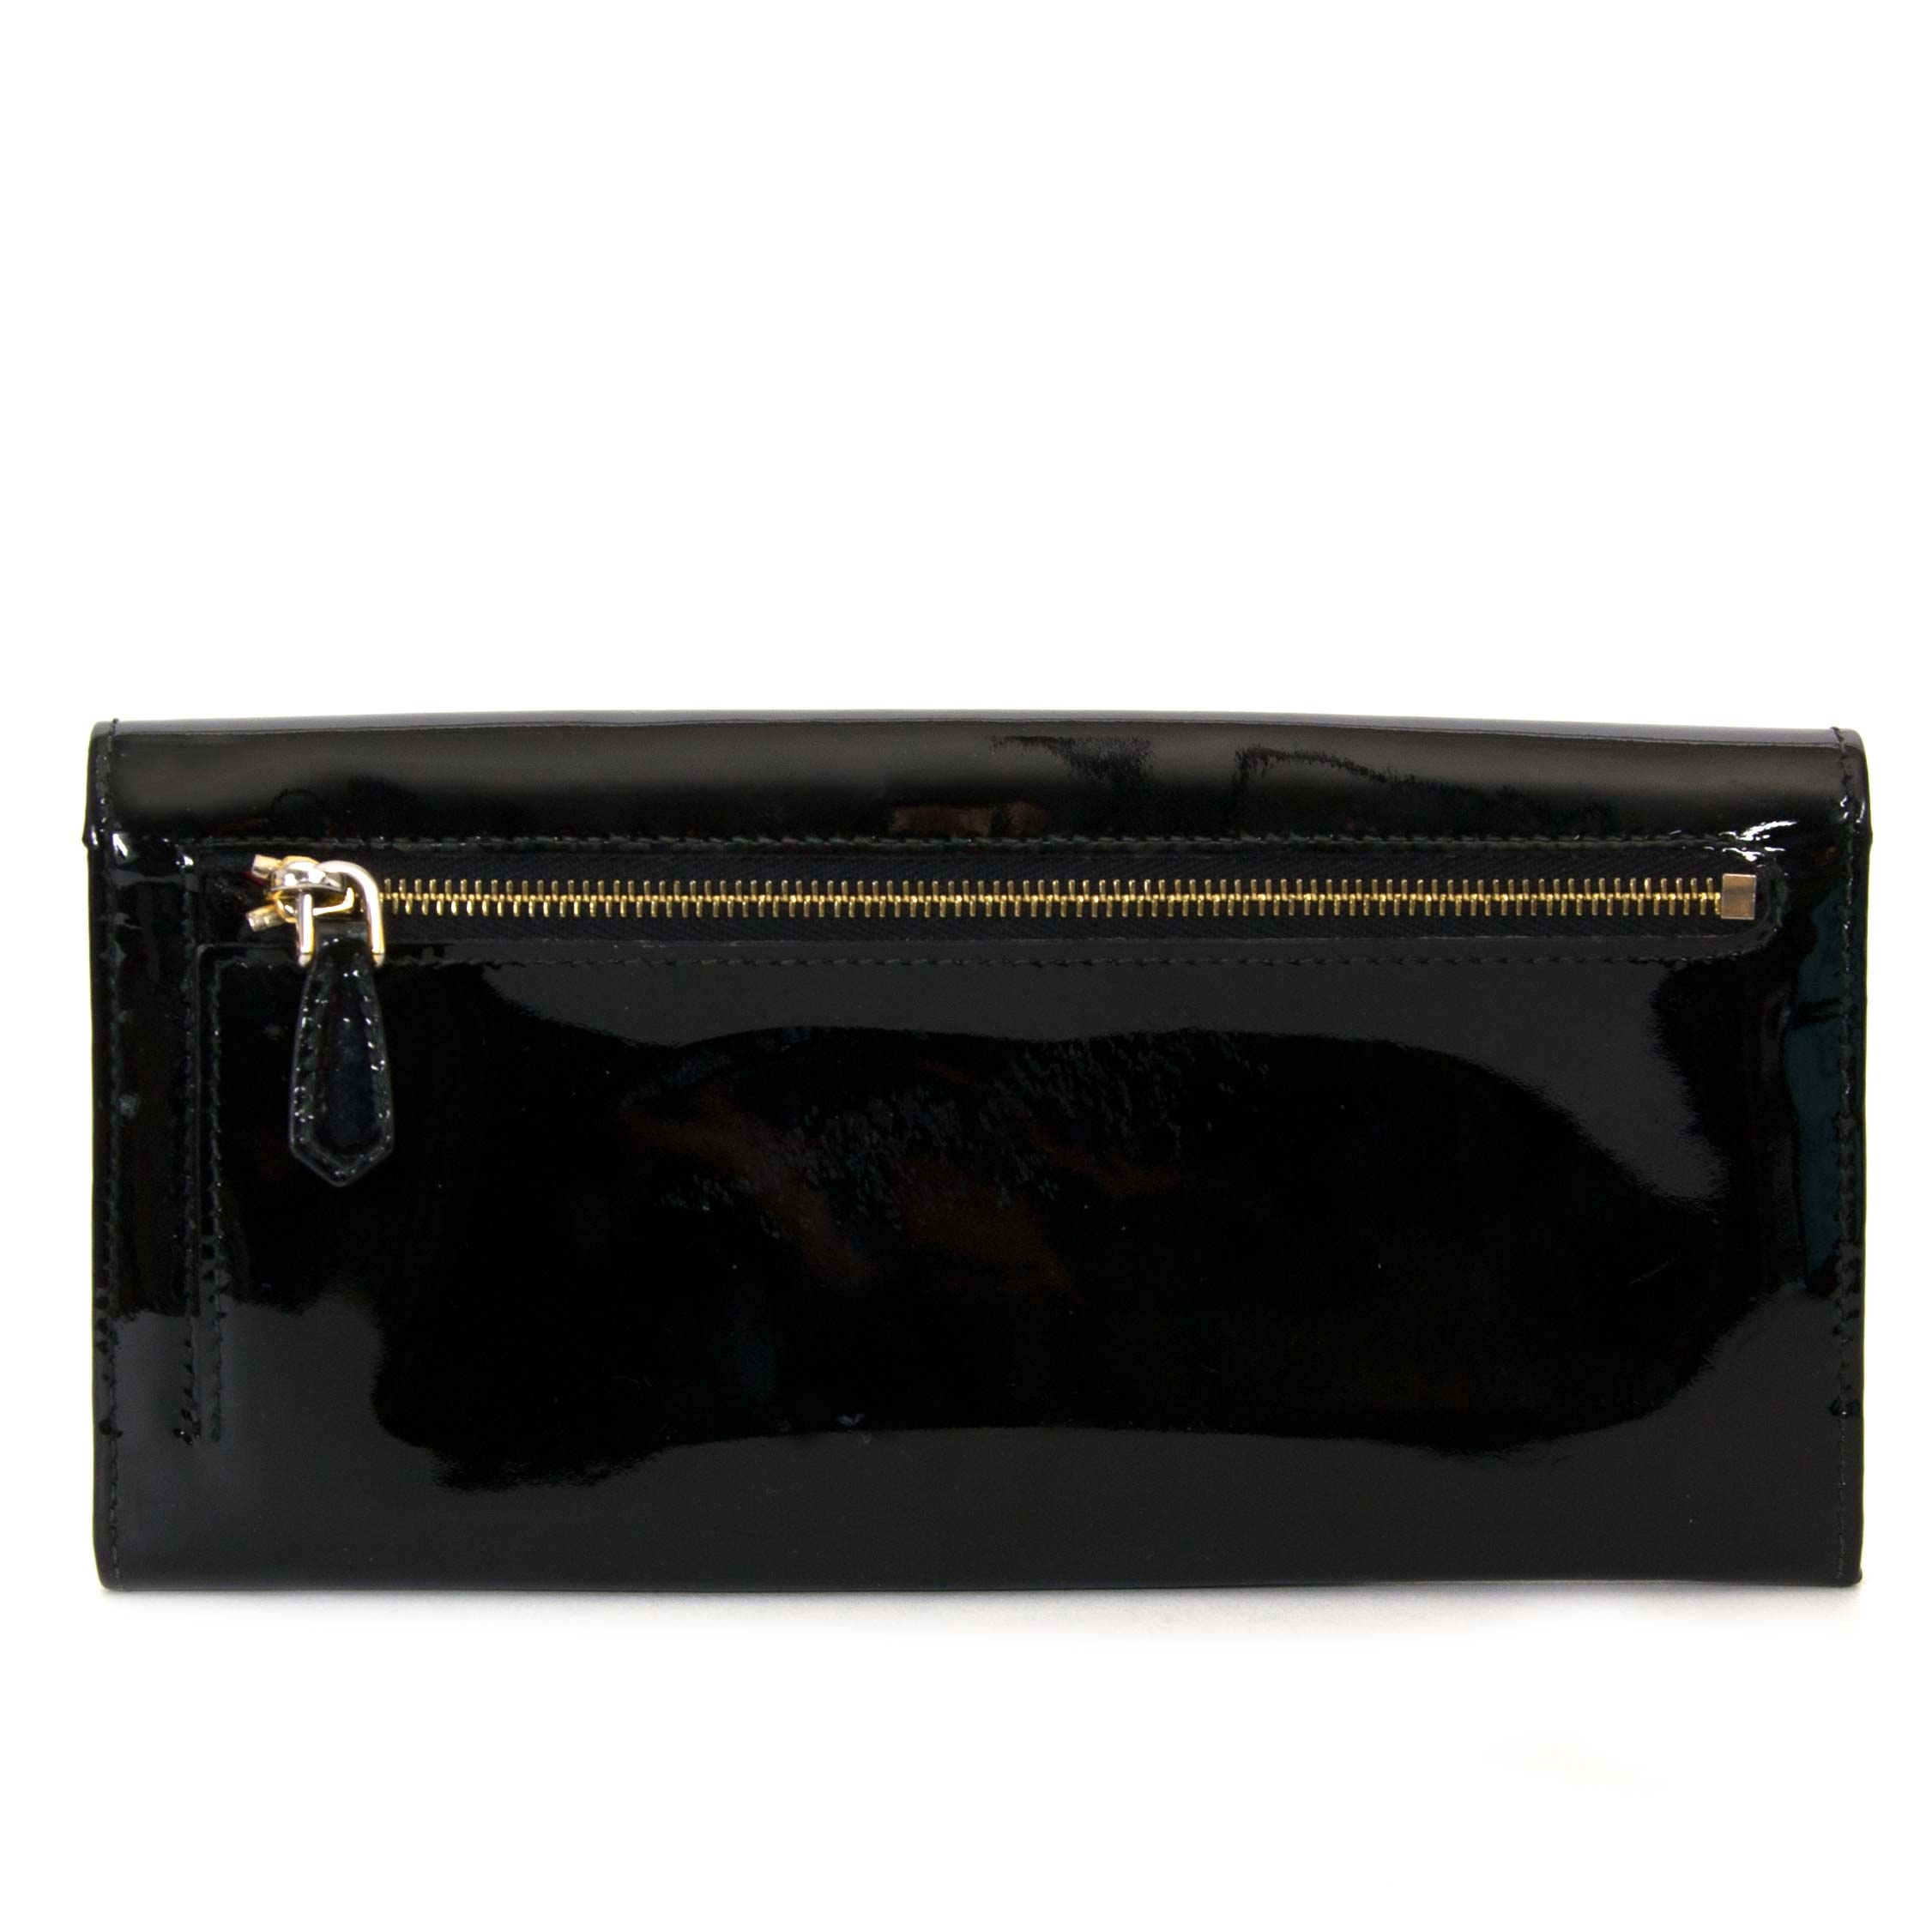 prada black patent leather wallet now for sale at labellov vintage fashion webshop belgium